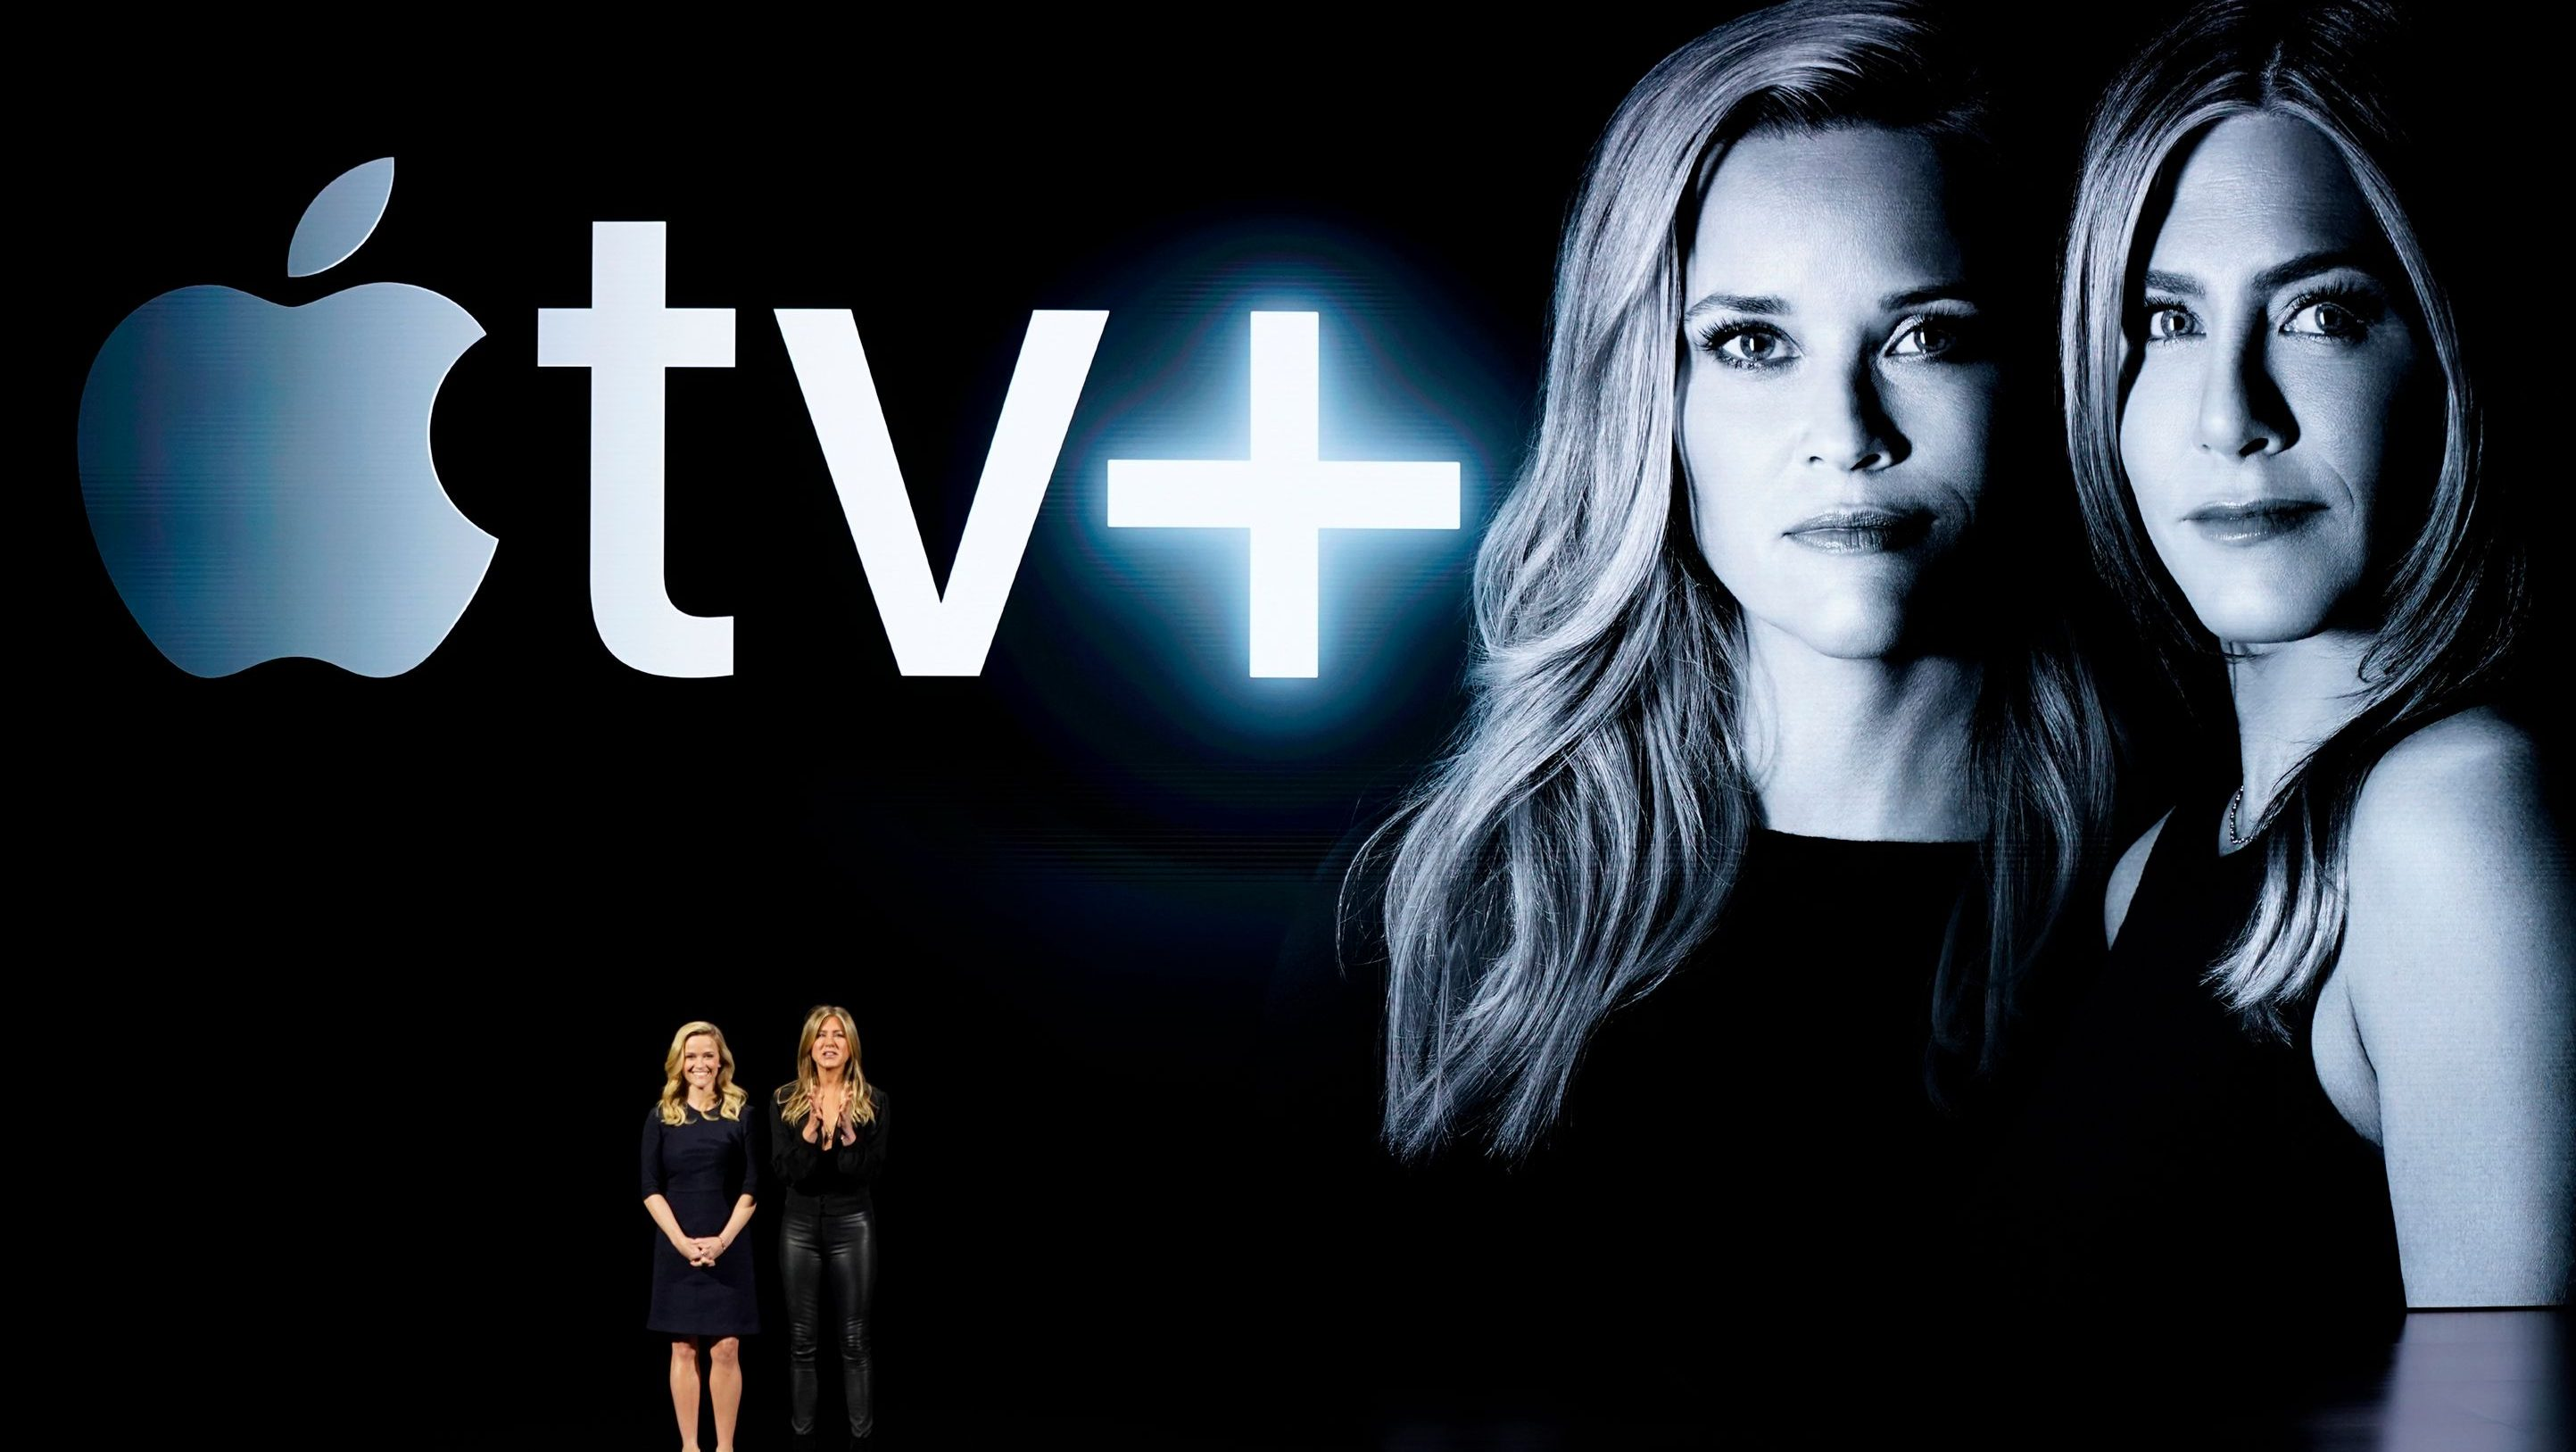 apple tv+ streaming reese witherspoon jennifer aniston